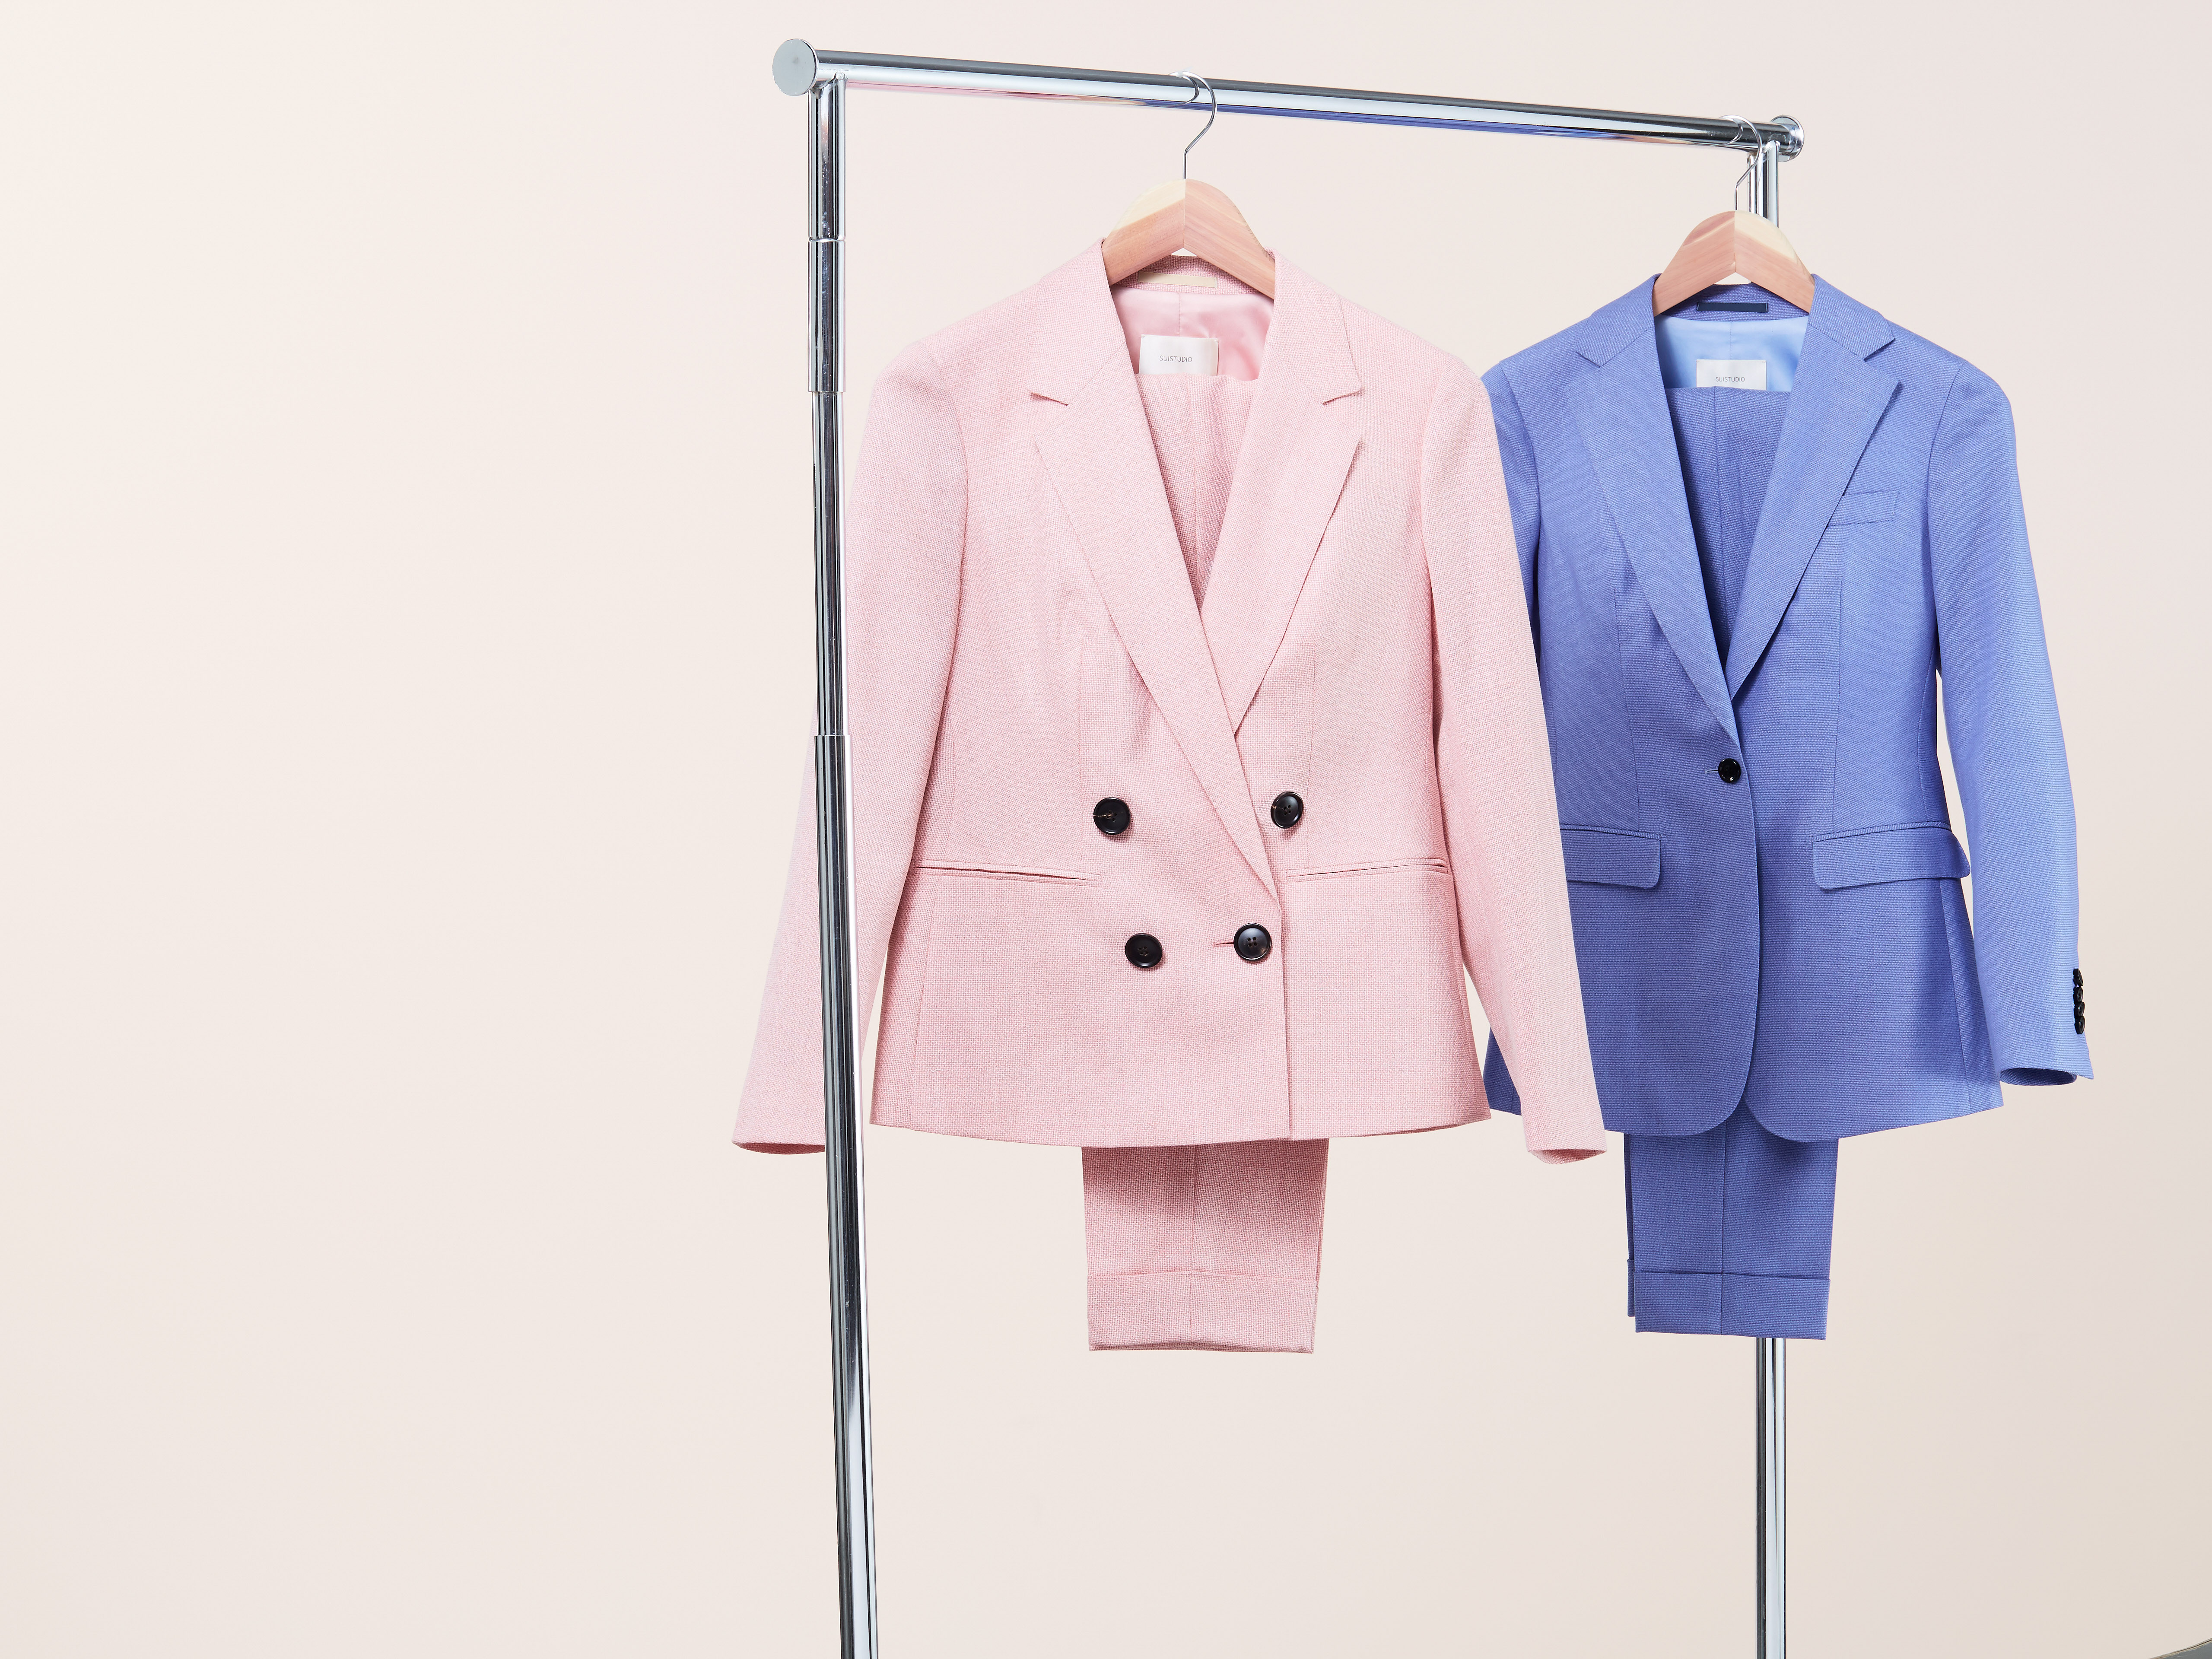 spring style suits